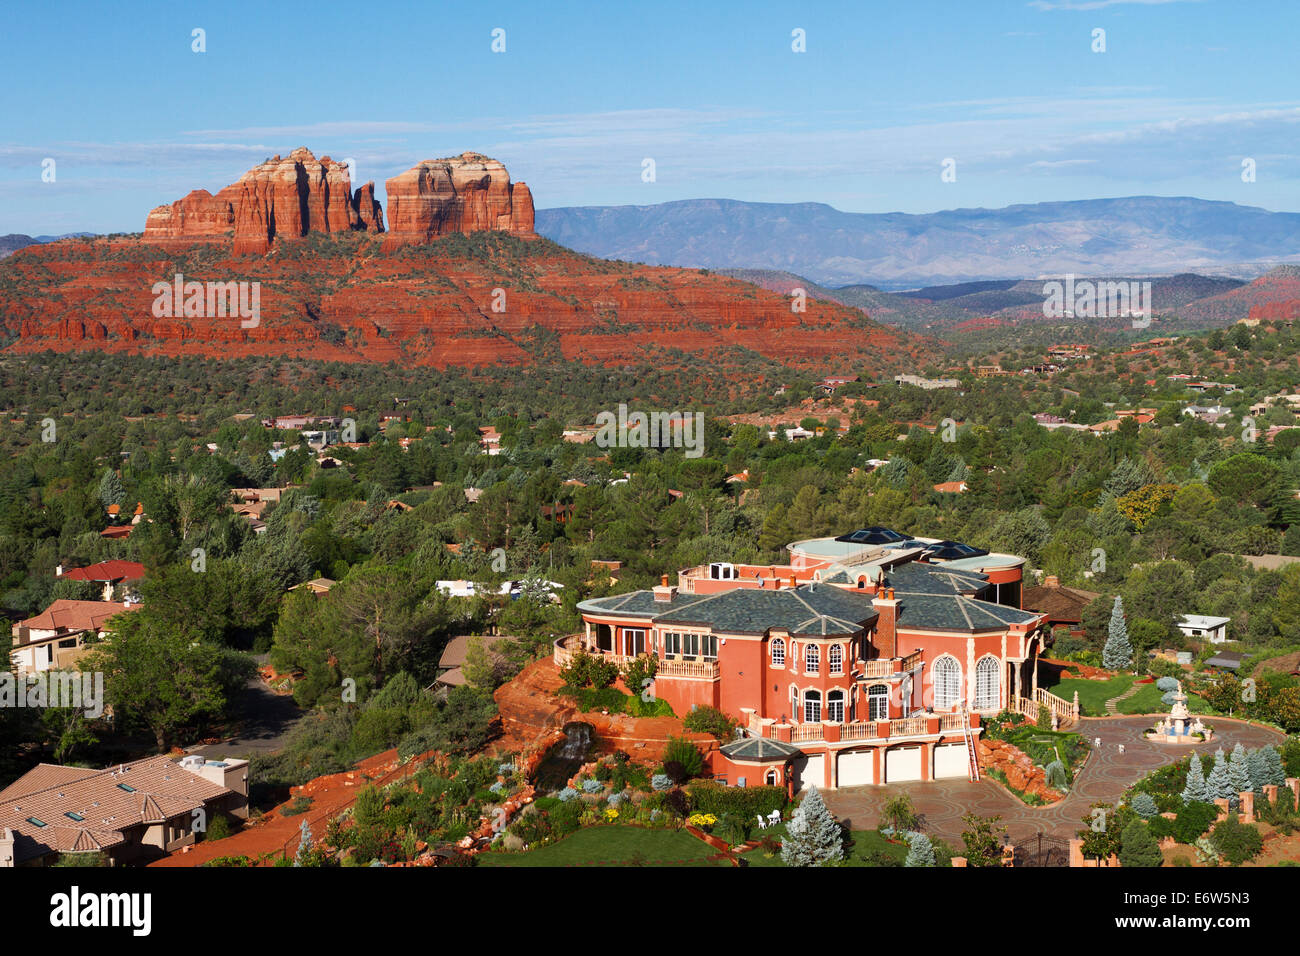 A Mansion sits with Cathedral rock in the background in Sedona Arizona. - Stock Image